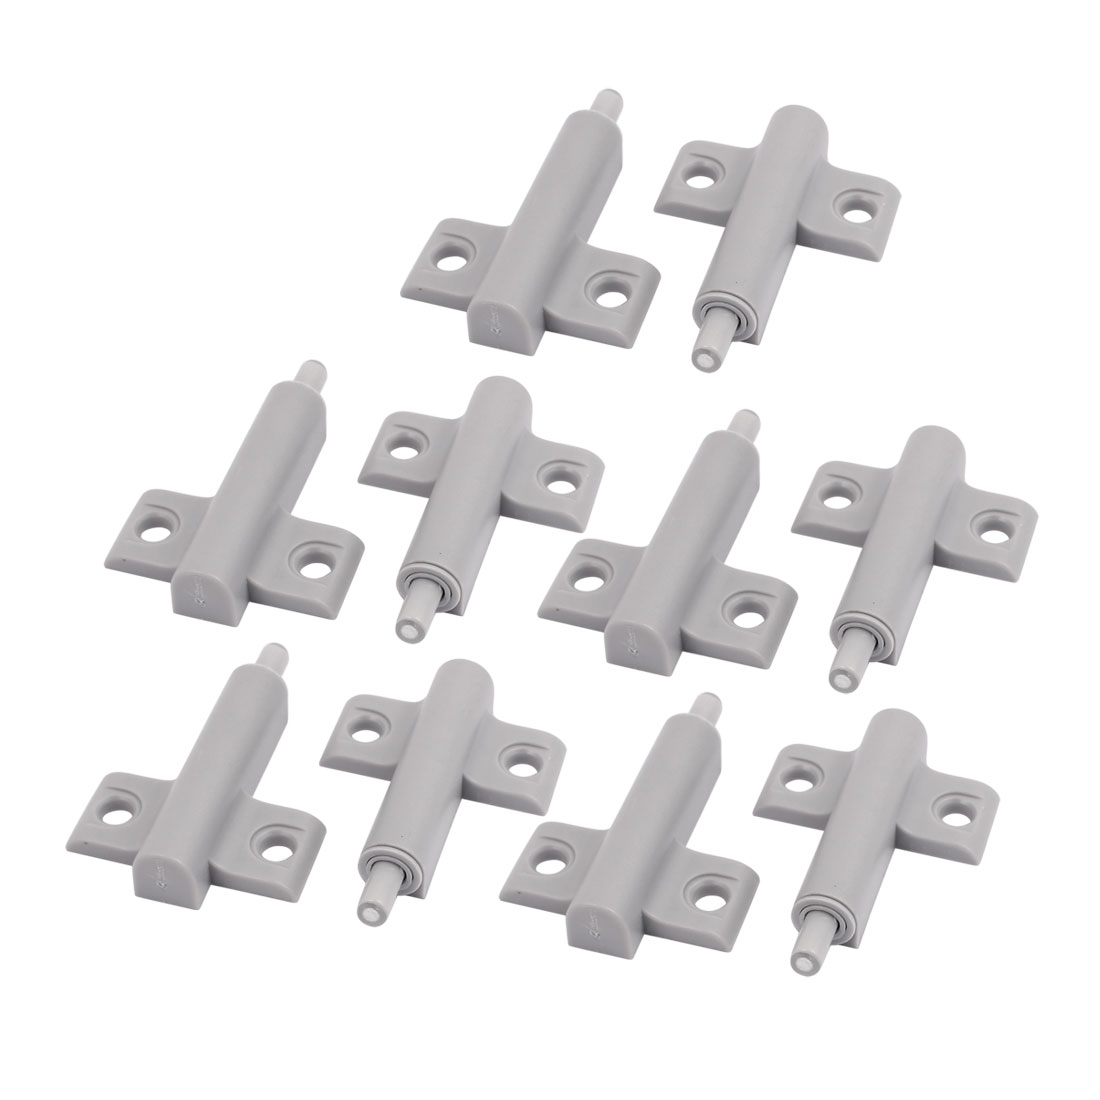 Cupboard Cabinet Drawer Hole Mounting Damper Bumper Closer Buffer Gray 10pcs